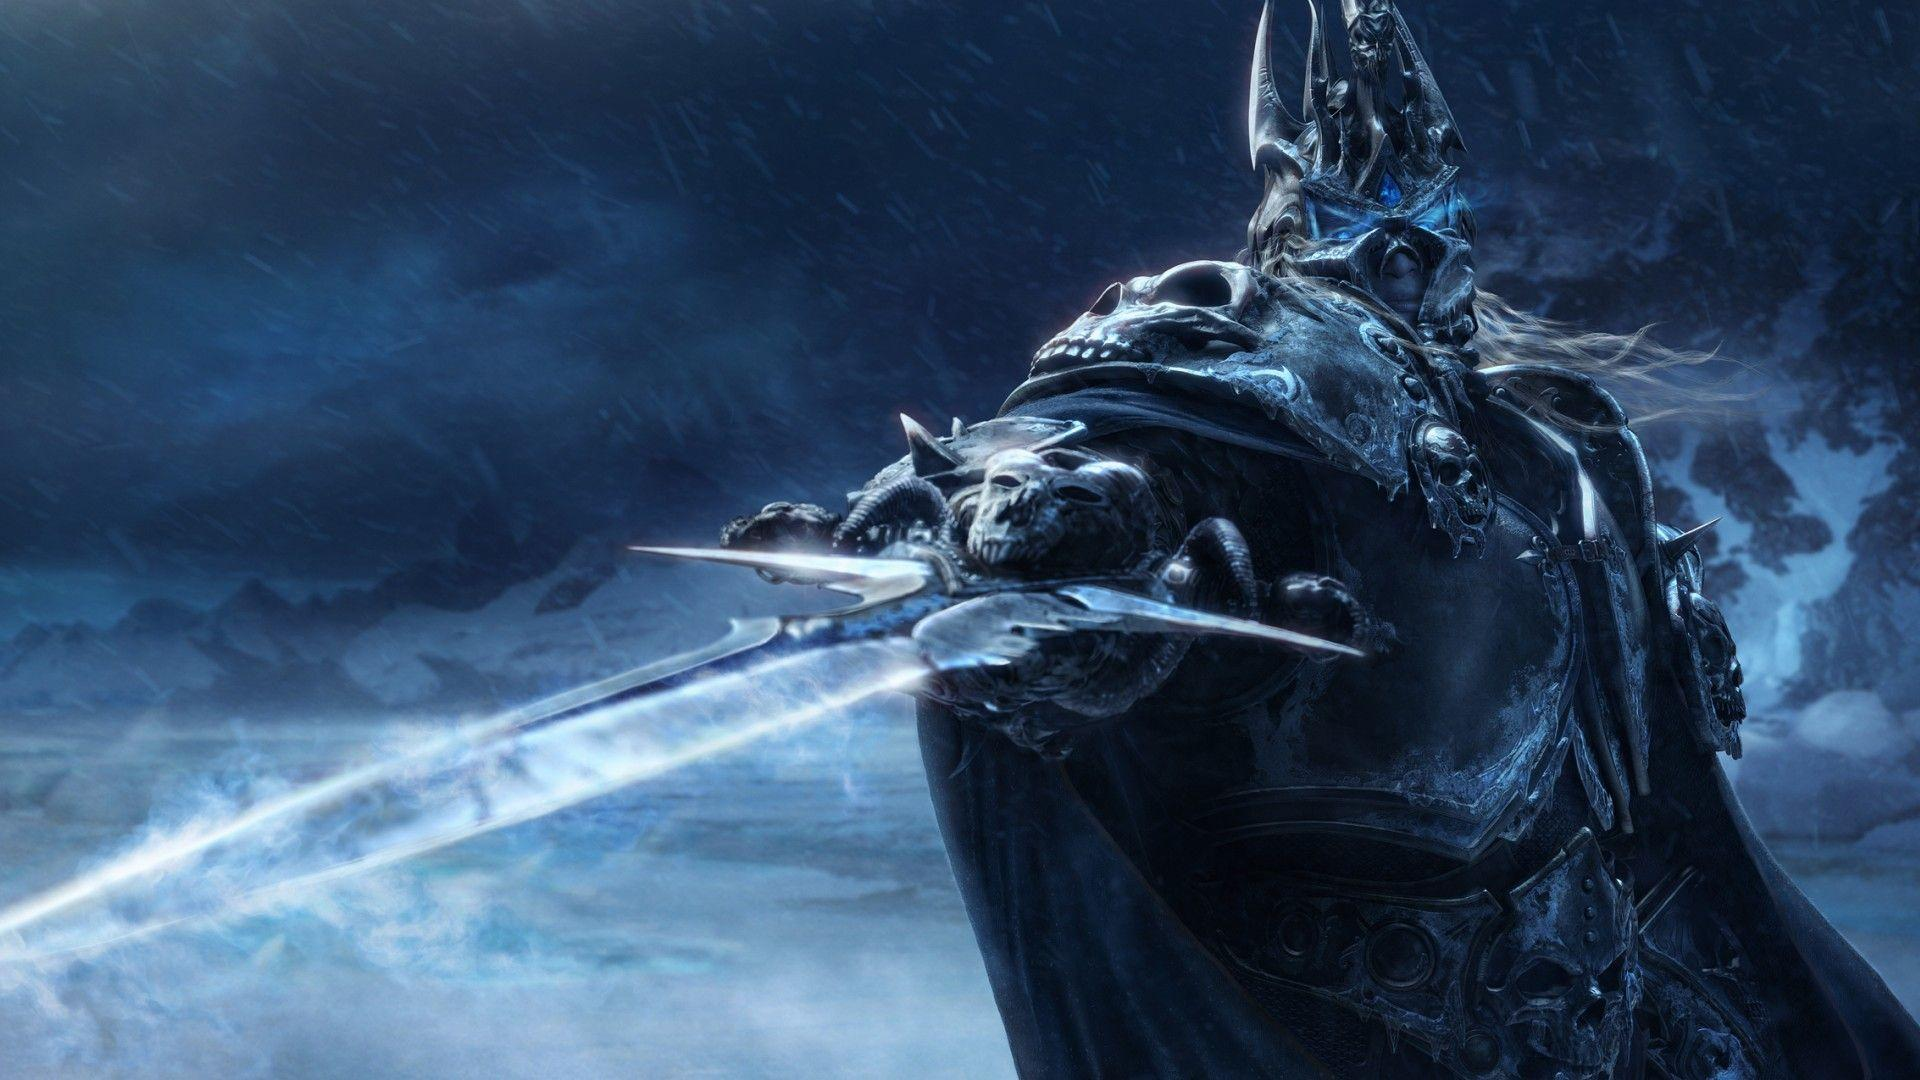 Lich King Wallpapers - Top Free Lich King Backgrounds - WallpaperAccess